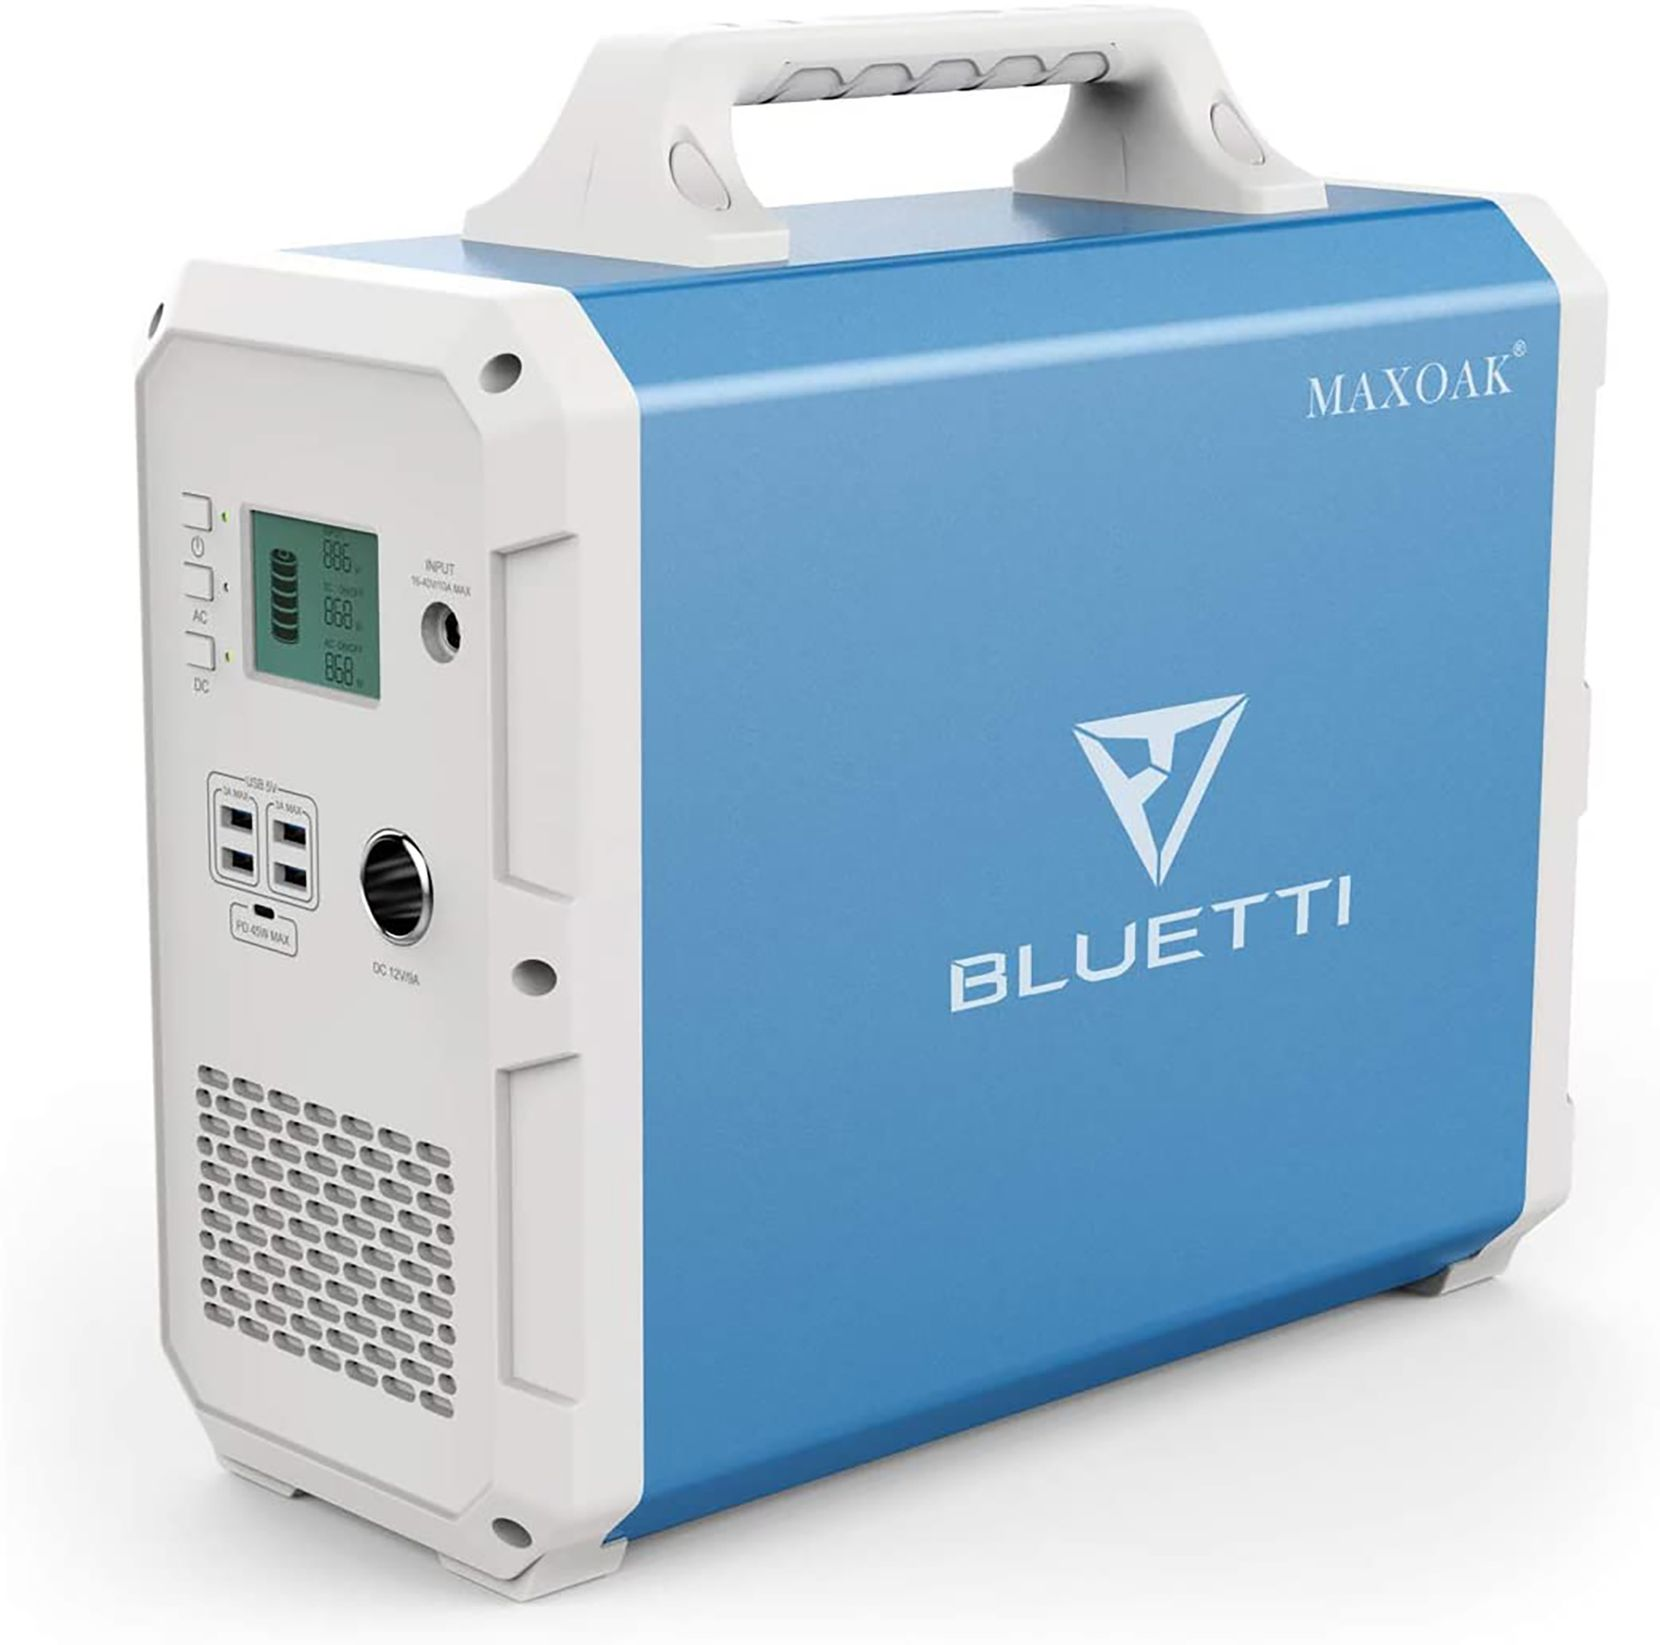 Maxoak Bluetti EB240 2400Wh/1000w Power Station